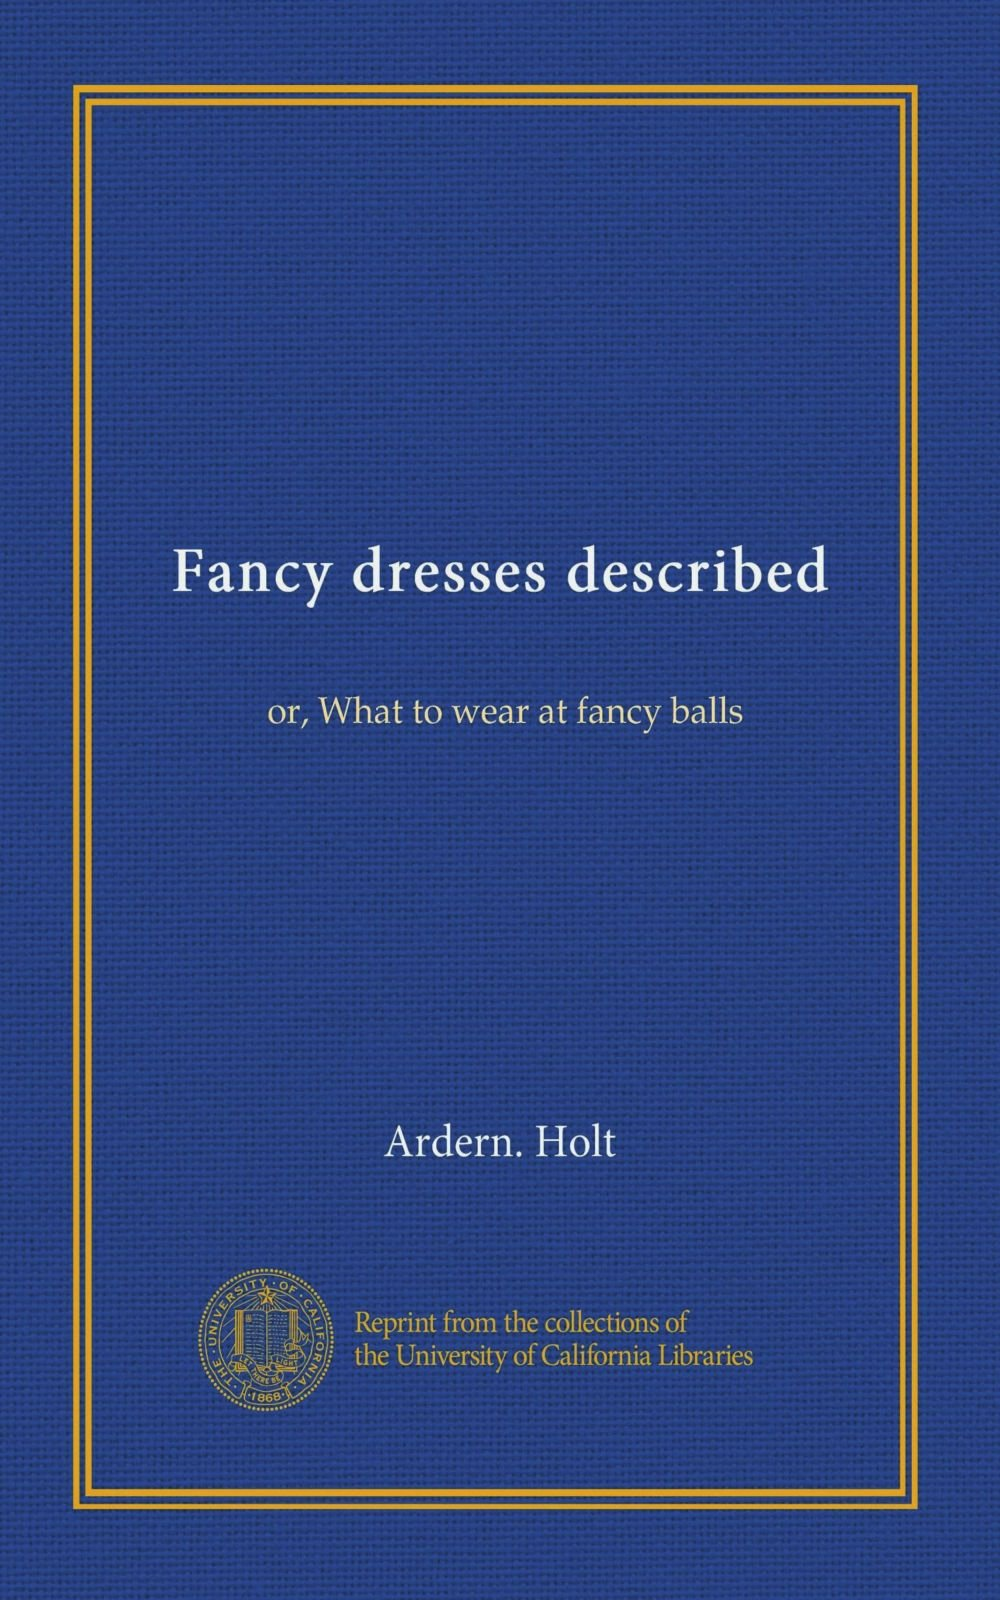 Download Fancy dresses described: or, What to wear at fancy balls pdf